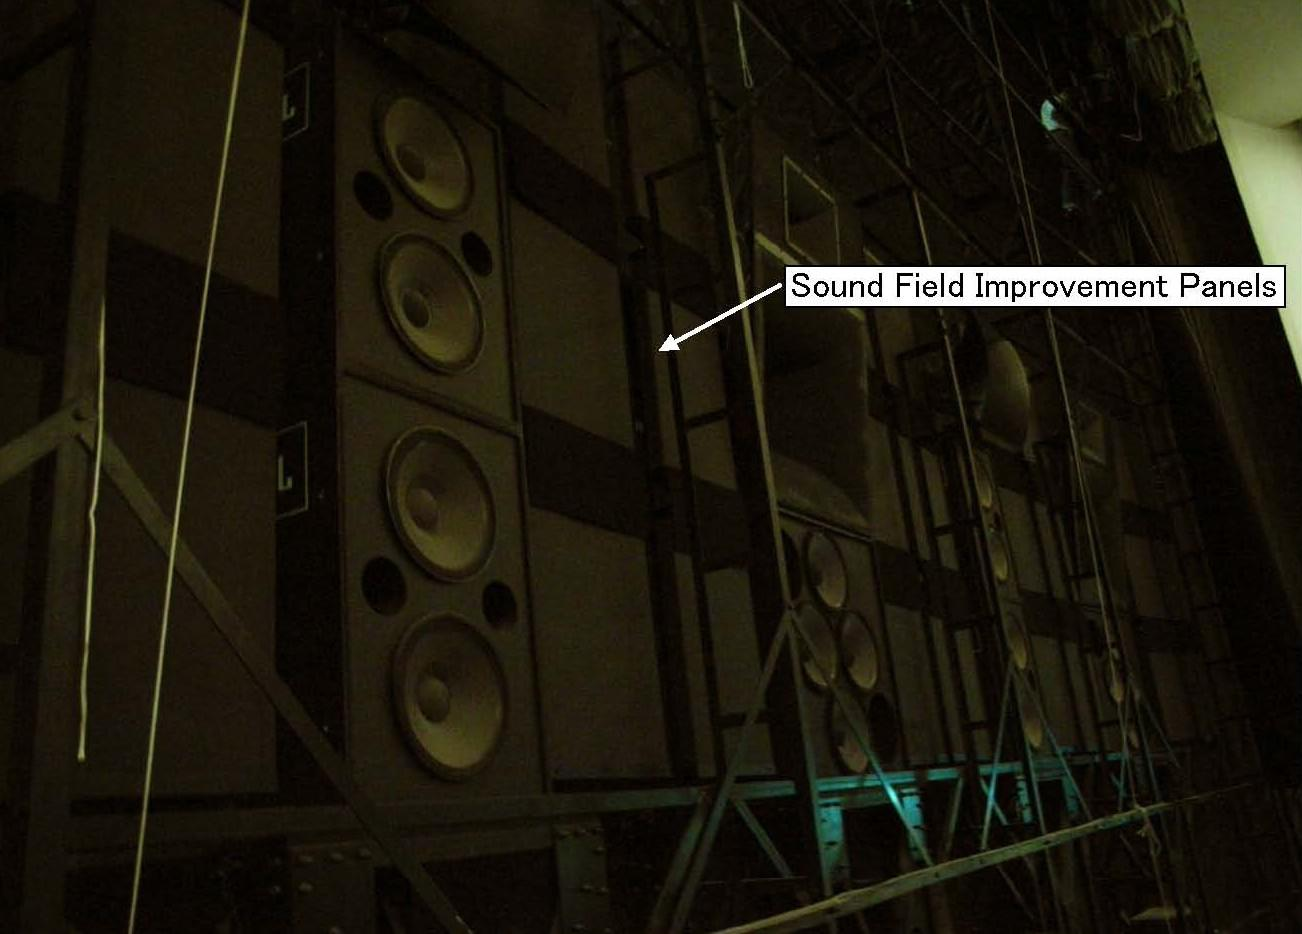 Installation example of panels for improving sound field